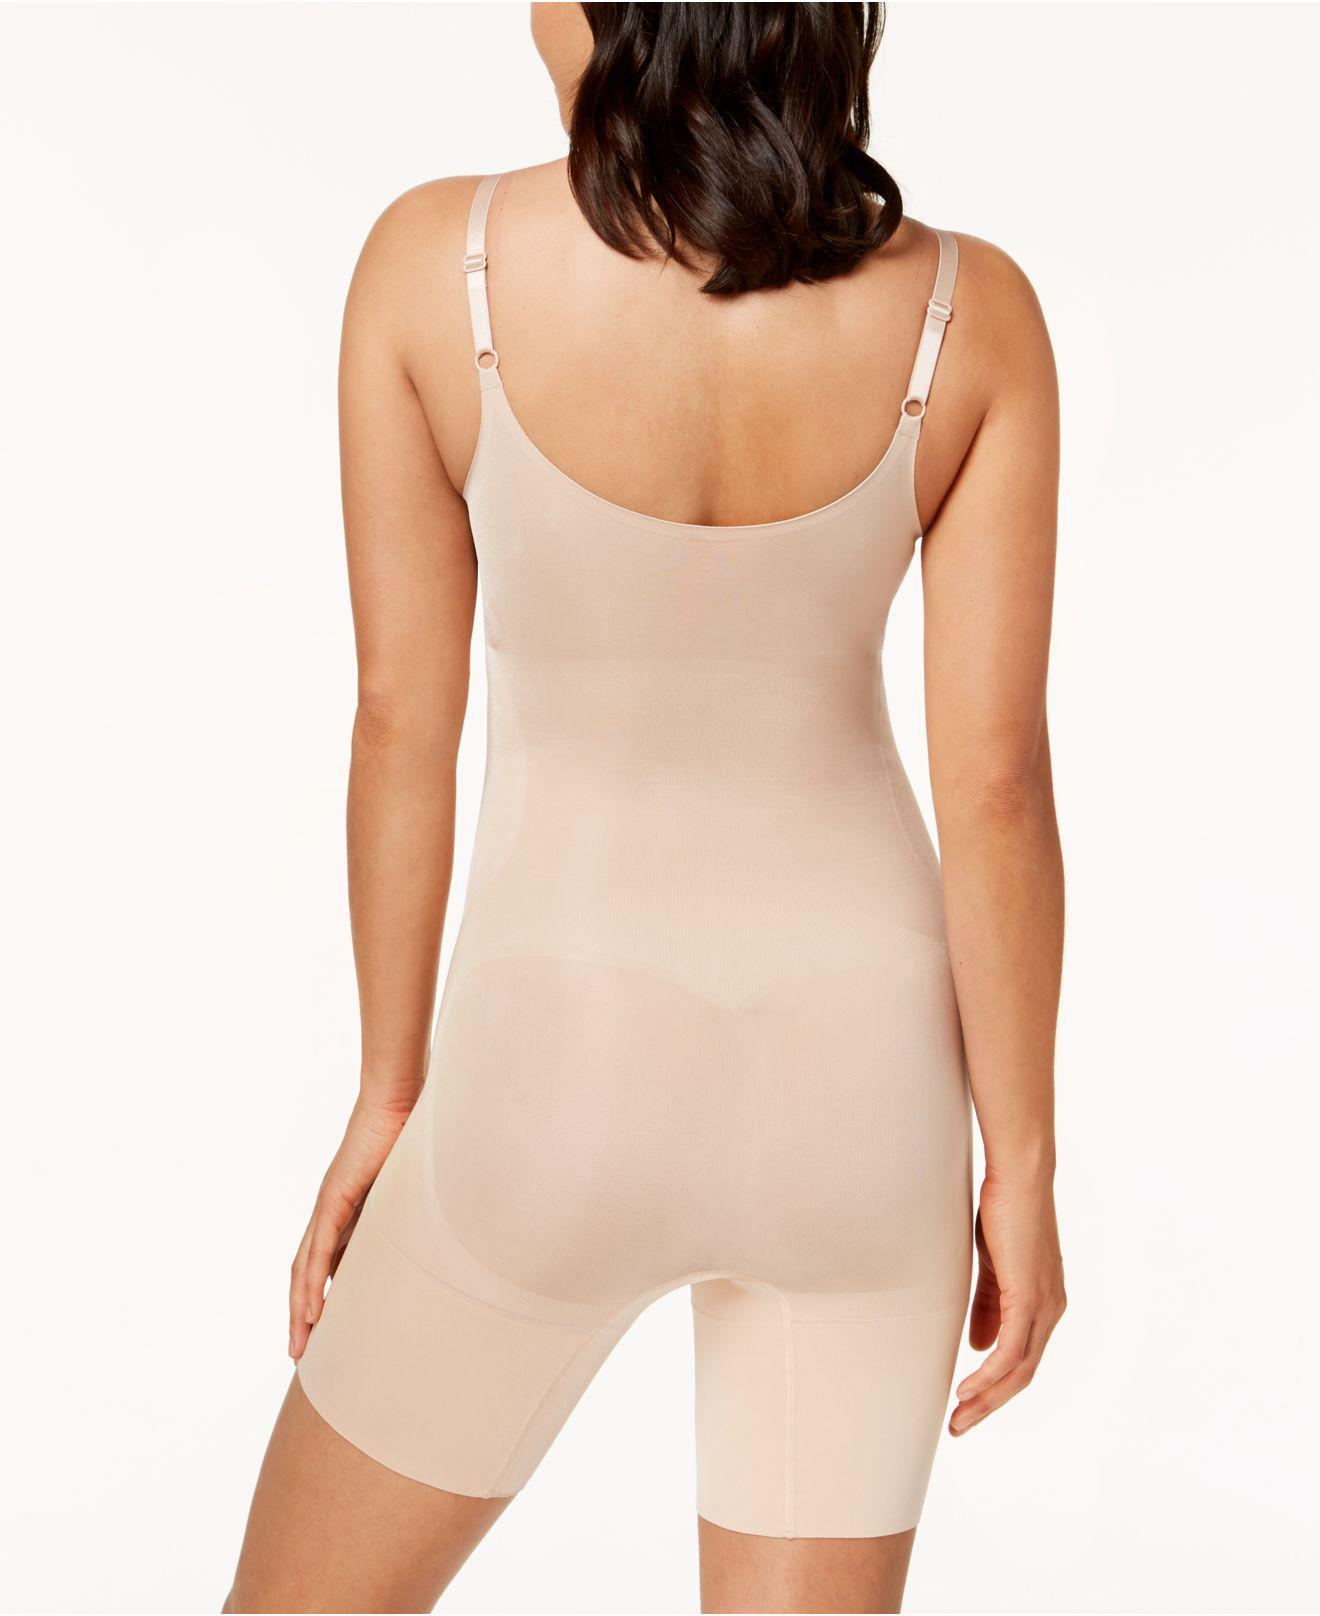 6db462bc4e Lyst - Spanx Oncore Open-bust Mid-thigh Bodysuit 10130r in Natural